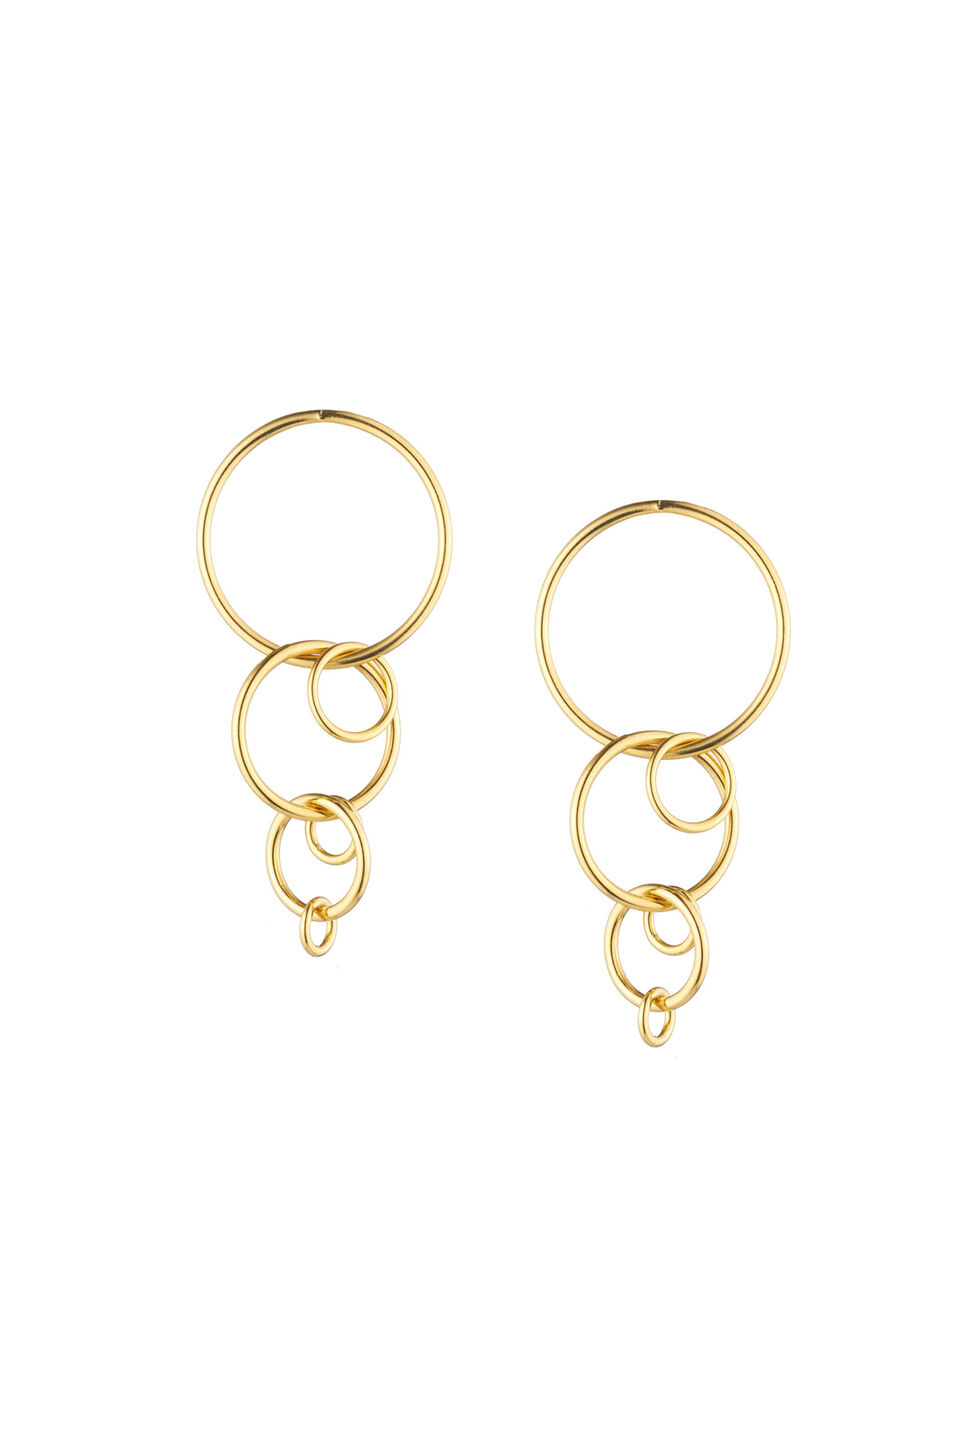 Trina Turk Hollywood Hills Linear Link Earrings - Gold - Size Fit